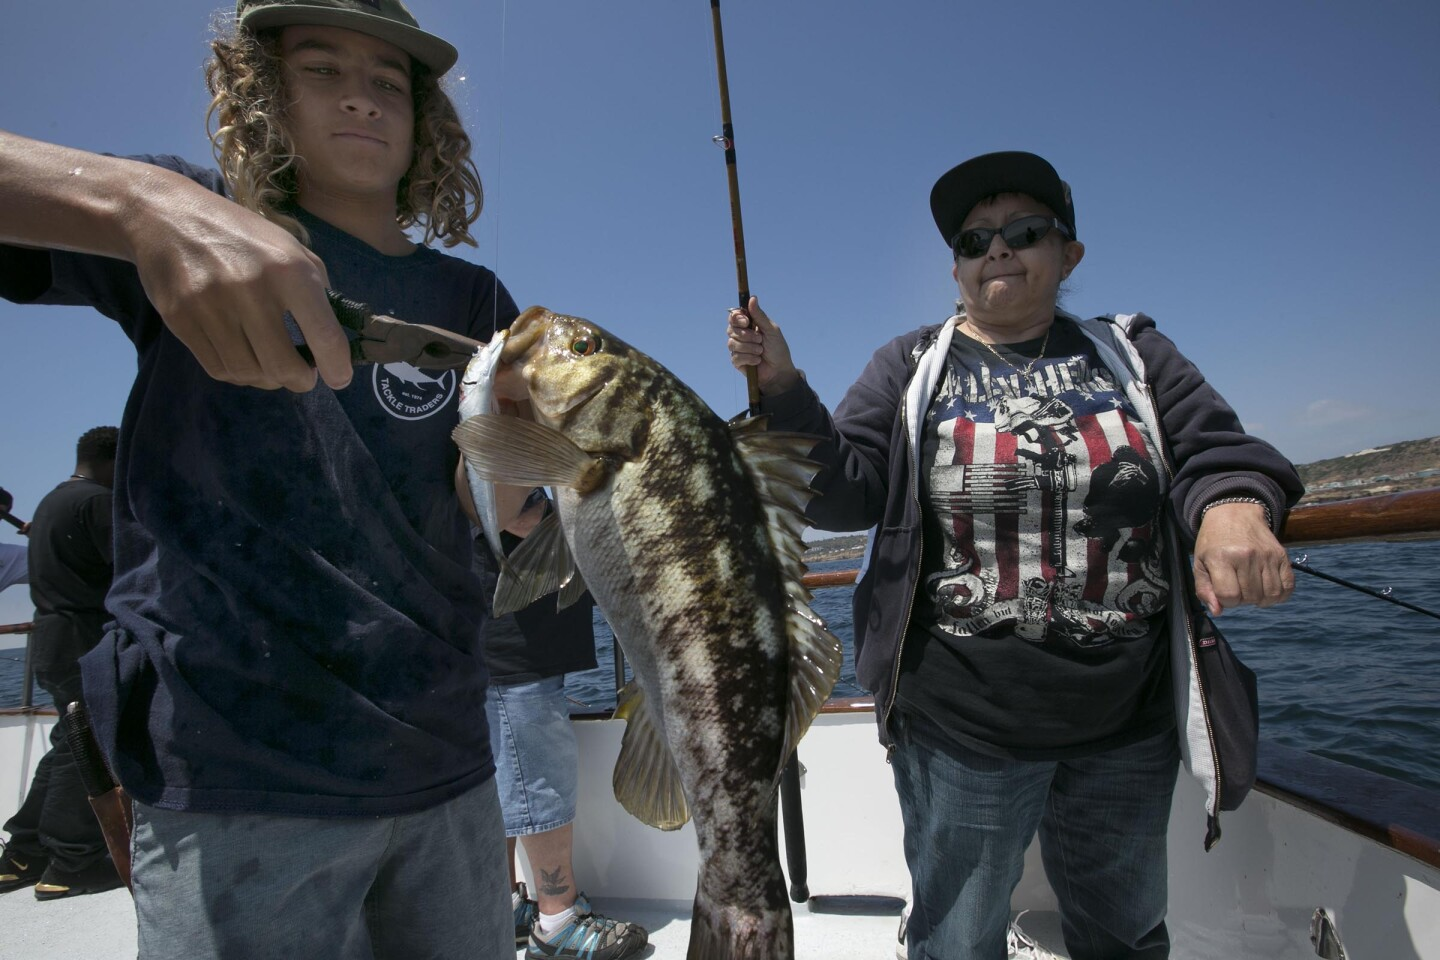 Outpaitient veterans from the Loma Linda VA hospital, like Army veteran Gloria Mauricio, right, getting a hand with an undersize barracuda by deckhand Niko Launais, made a trip to Point Loma on Tuesday, June 18, 2019 to enjoy a fishing trip courtesy of their local Elks Club. The group left the dock at H&M Landing aboard the Fisherman III at 10am and returned at 6pm after a day of bottom fishing off of Point Loma.